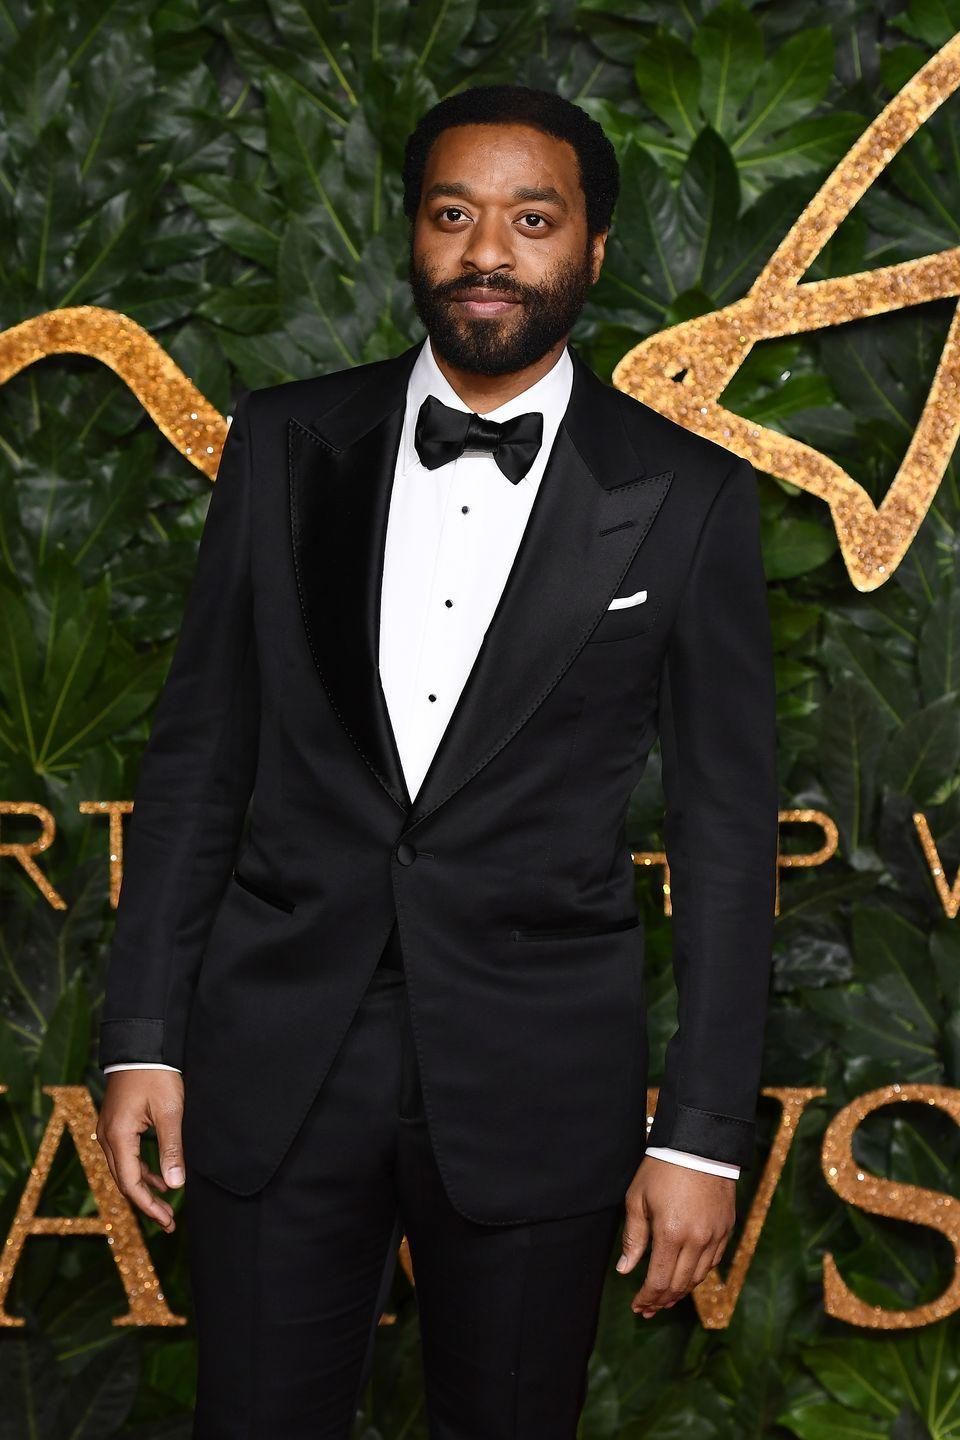 <p>You may recognize Chiwetel Ejiofor most from his iconic performance in 2013's 12 Years a Slave, where he played Solomon Northup and was nominated for an Oscar. But since then, Ejiofor has built up quite the action portfolio, appearing in Doctor Strange and The Old Guard, and will reprise his roles in both films' sequels. </p><p>The actor has more than enough talent to take on the smoldering, valorous Bond. With Ejiofor's talent, he could be someone who builds on Craig's take on the character, making him multifaceted and emotional, rather than just some spy who drinks a mean martini. Except where Craig's bond is gruff and kind of gives off the vibe that he's not the kind of guy you'd want to get in a bar fight guy, Ejiofor's whole thing is that he is smooth. He is smoooooth. And that's a vibe. —MP</p>